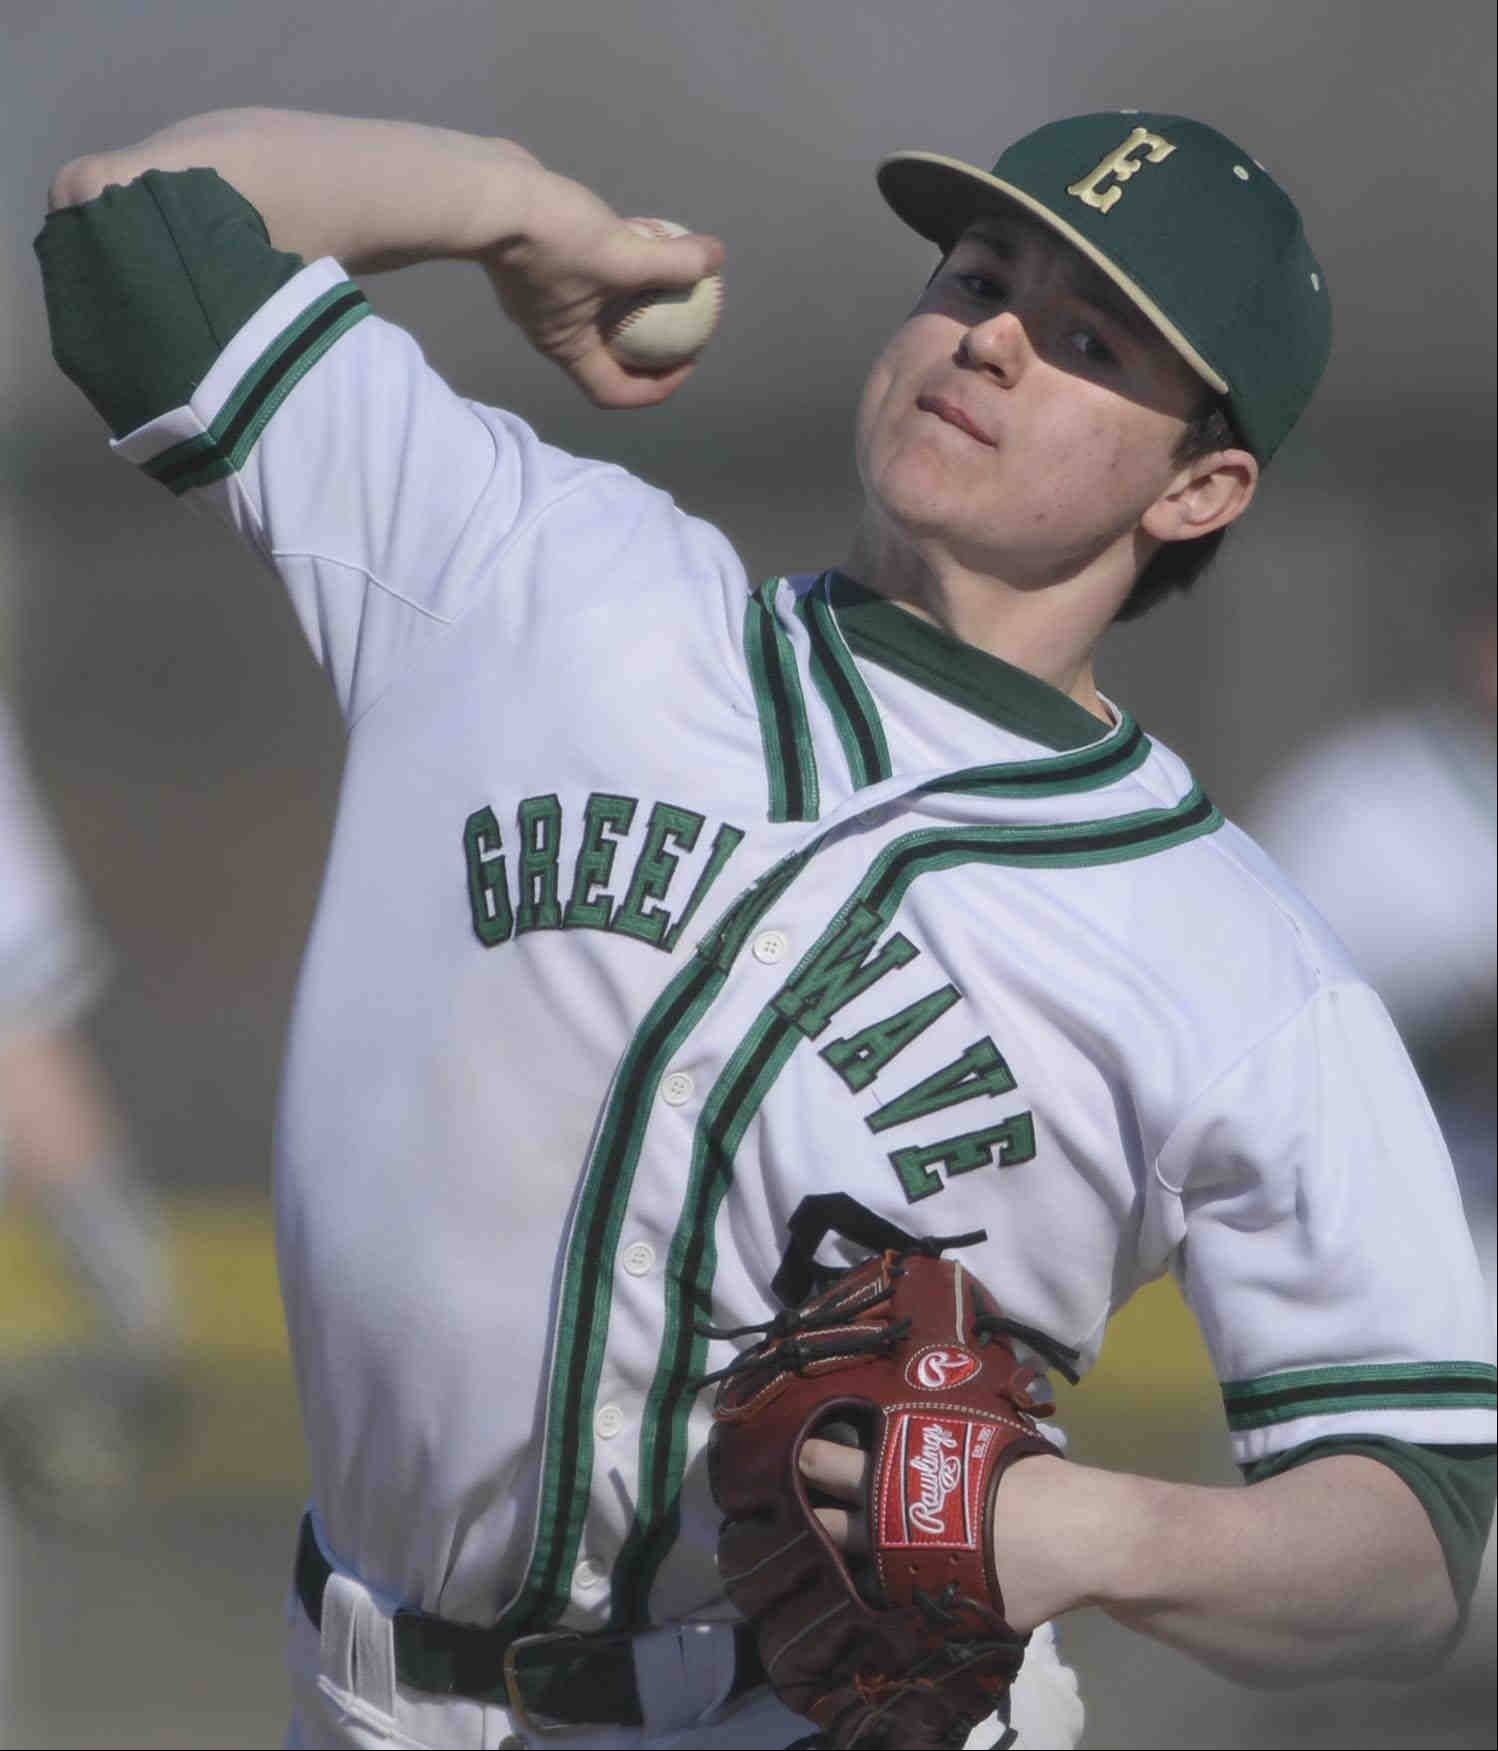 St. Edward starting pitcher Jack Tierney throws against Aurora Christian earlier this season. The Green Wave will face AC in regional semifinal play on Thursday.